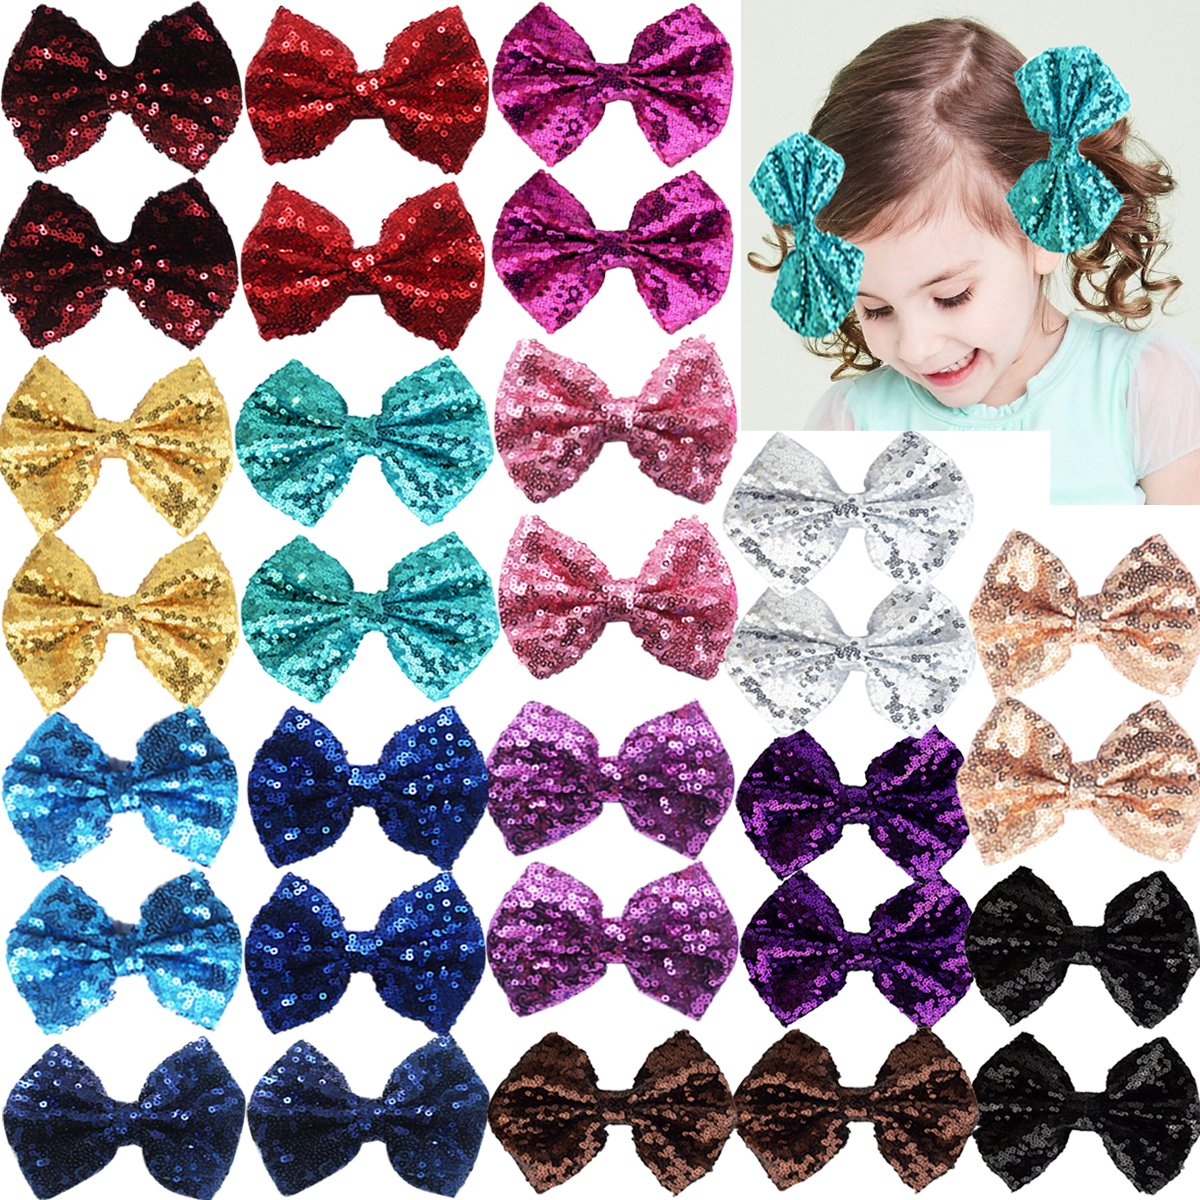 Party Festival Baby Girls Sparkling 30 4 years warranty Reservation Clips Glitter Piece Bows